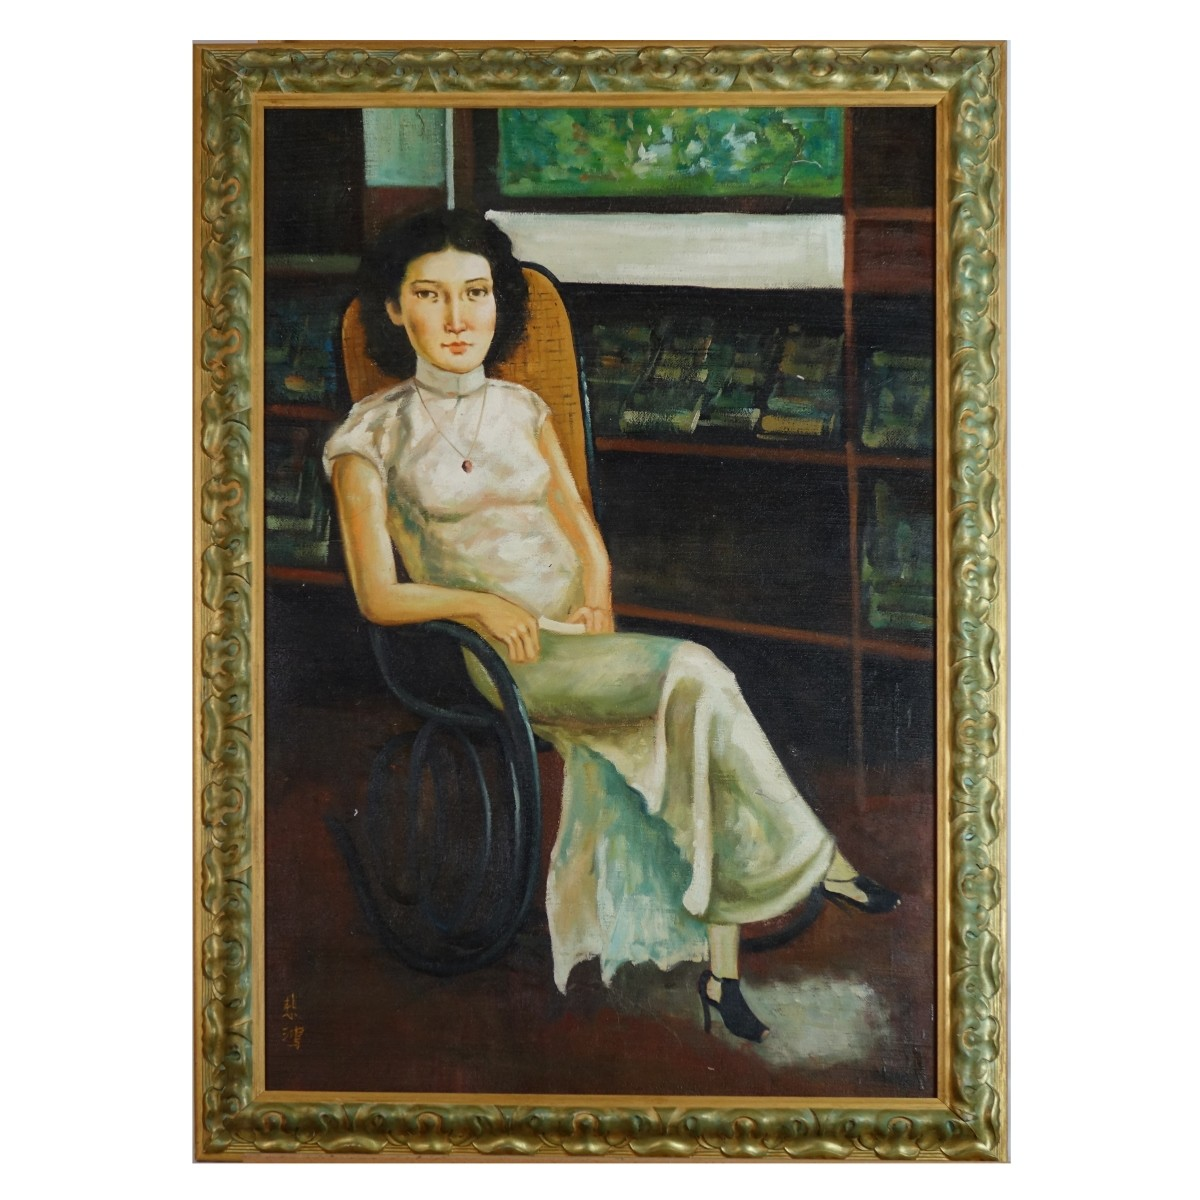 20th C. Chinese School Oil on Canvas